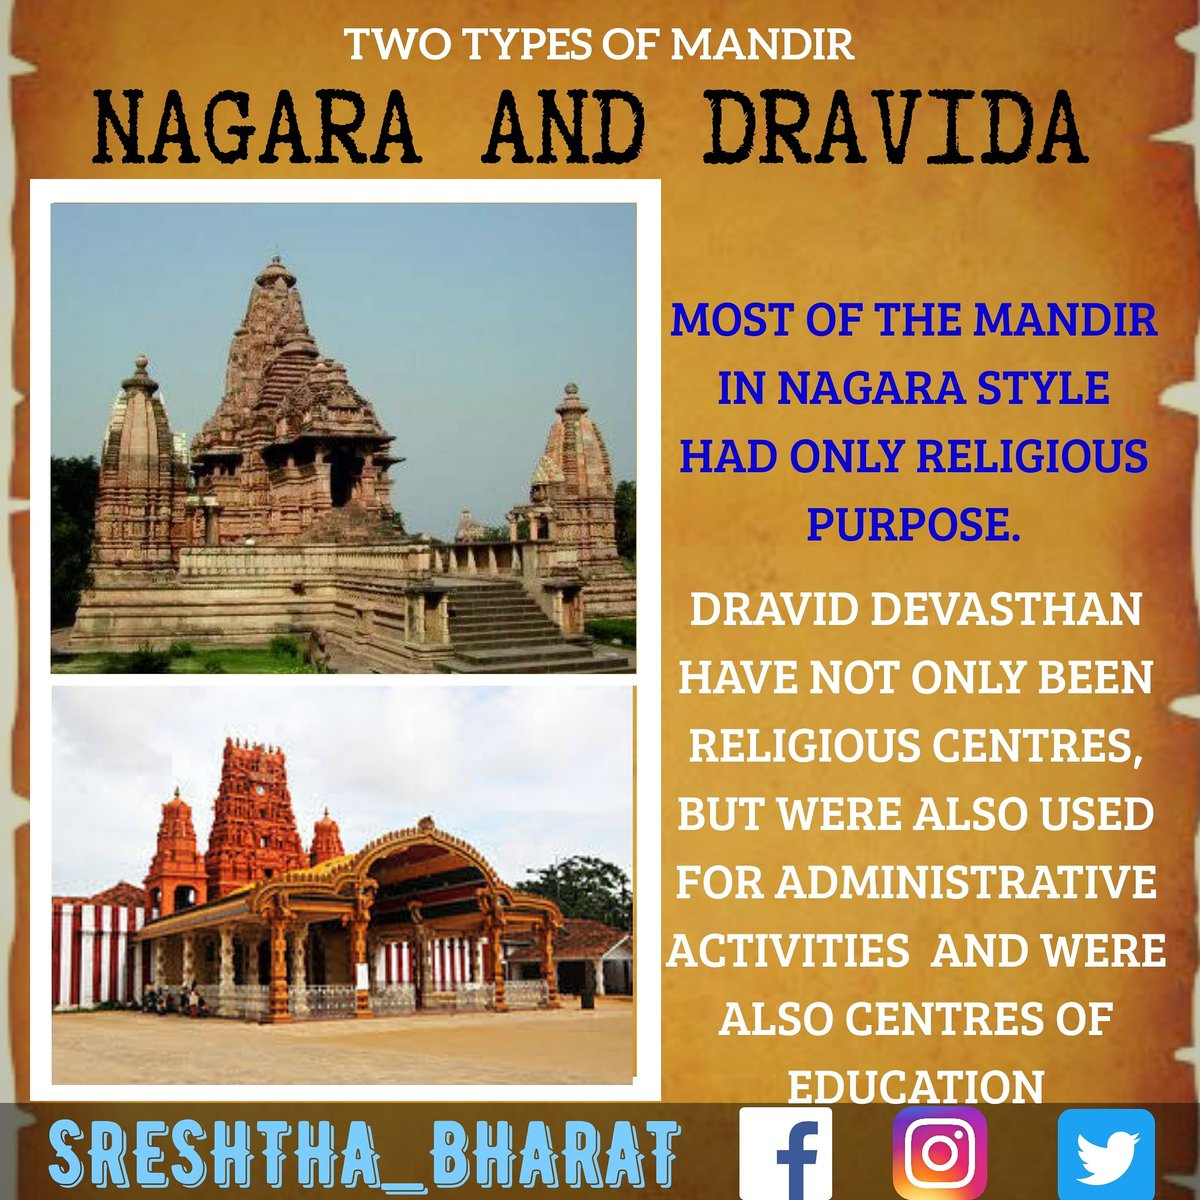 #temple_architecture  We will be getting closer to the Great Temple Architecture of our Sreshtha Bharat  Follow @Sreshthabharat on Facebook | Instagram | Twitter 🙏  #indianculture #indianarchitecture #hinduarchitecture #temple  #worship #templeworship #dravida #mandir #devasthan https://t.co/QiEWF2UeDD